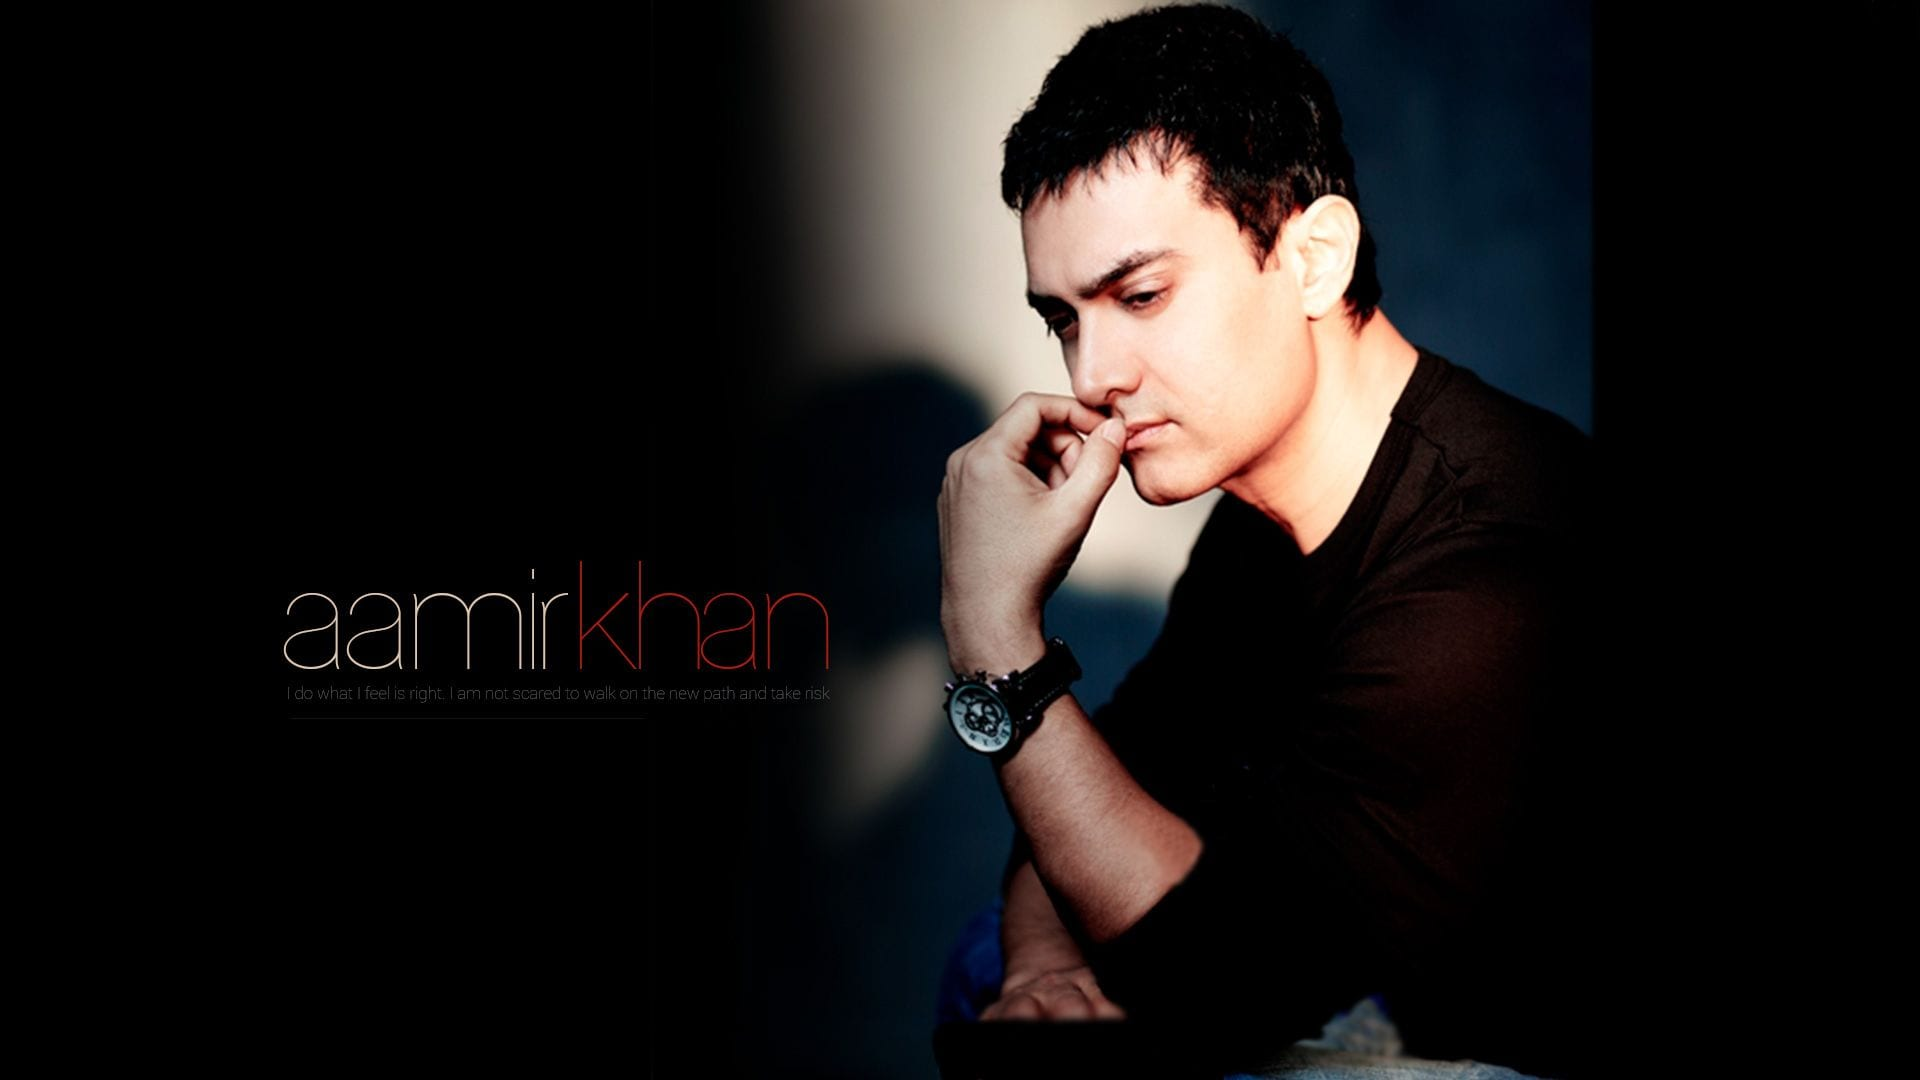 who is aamir khan dating